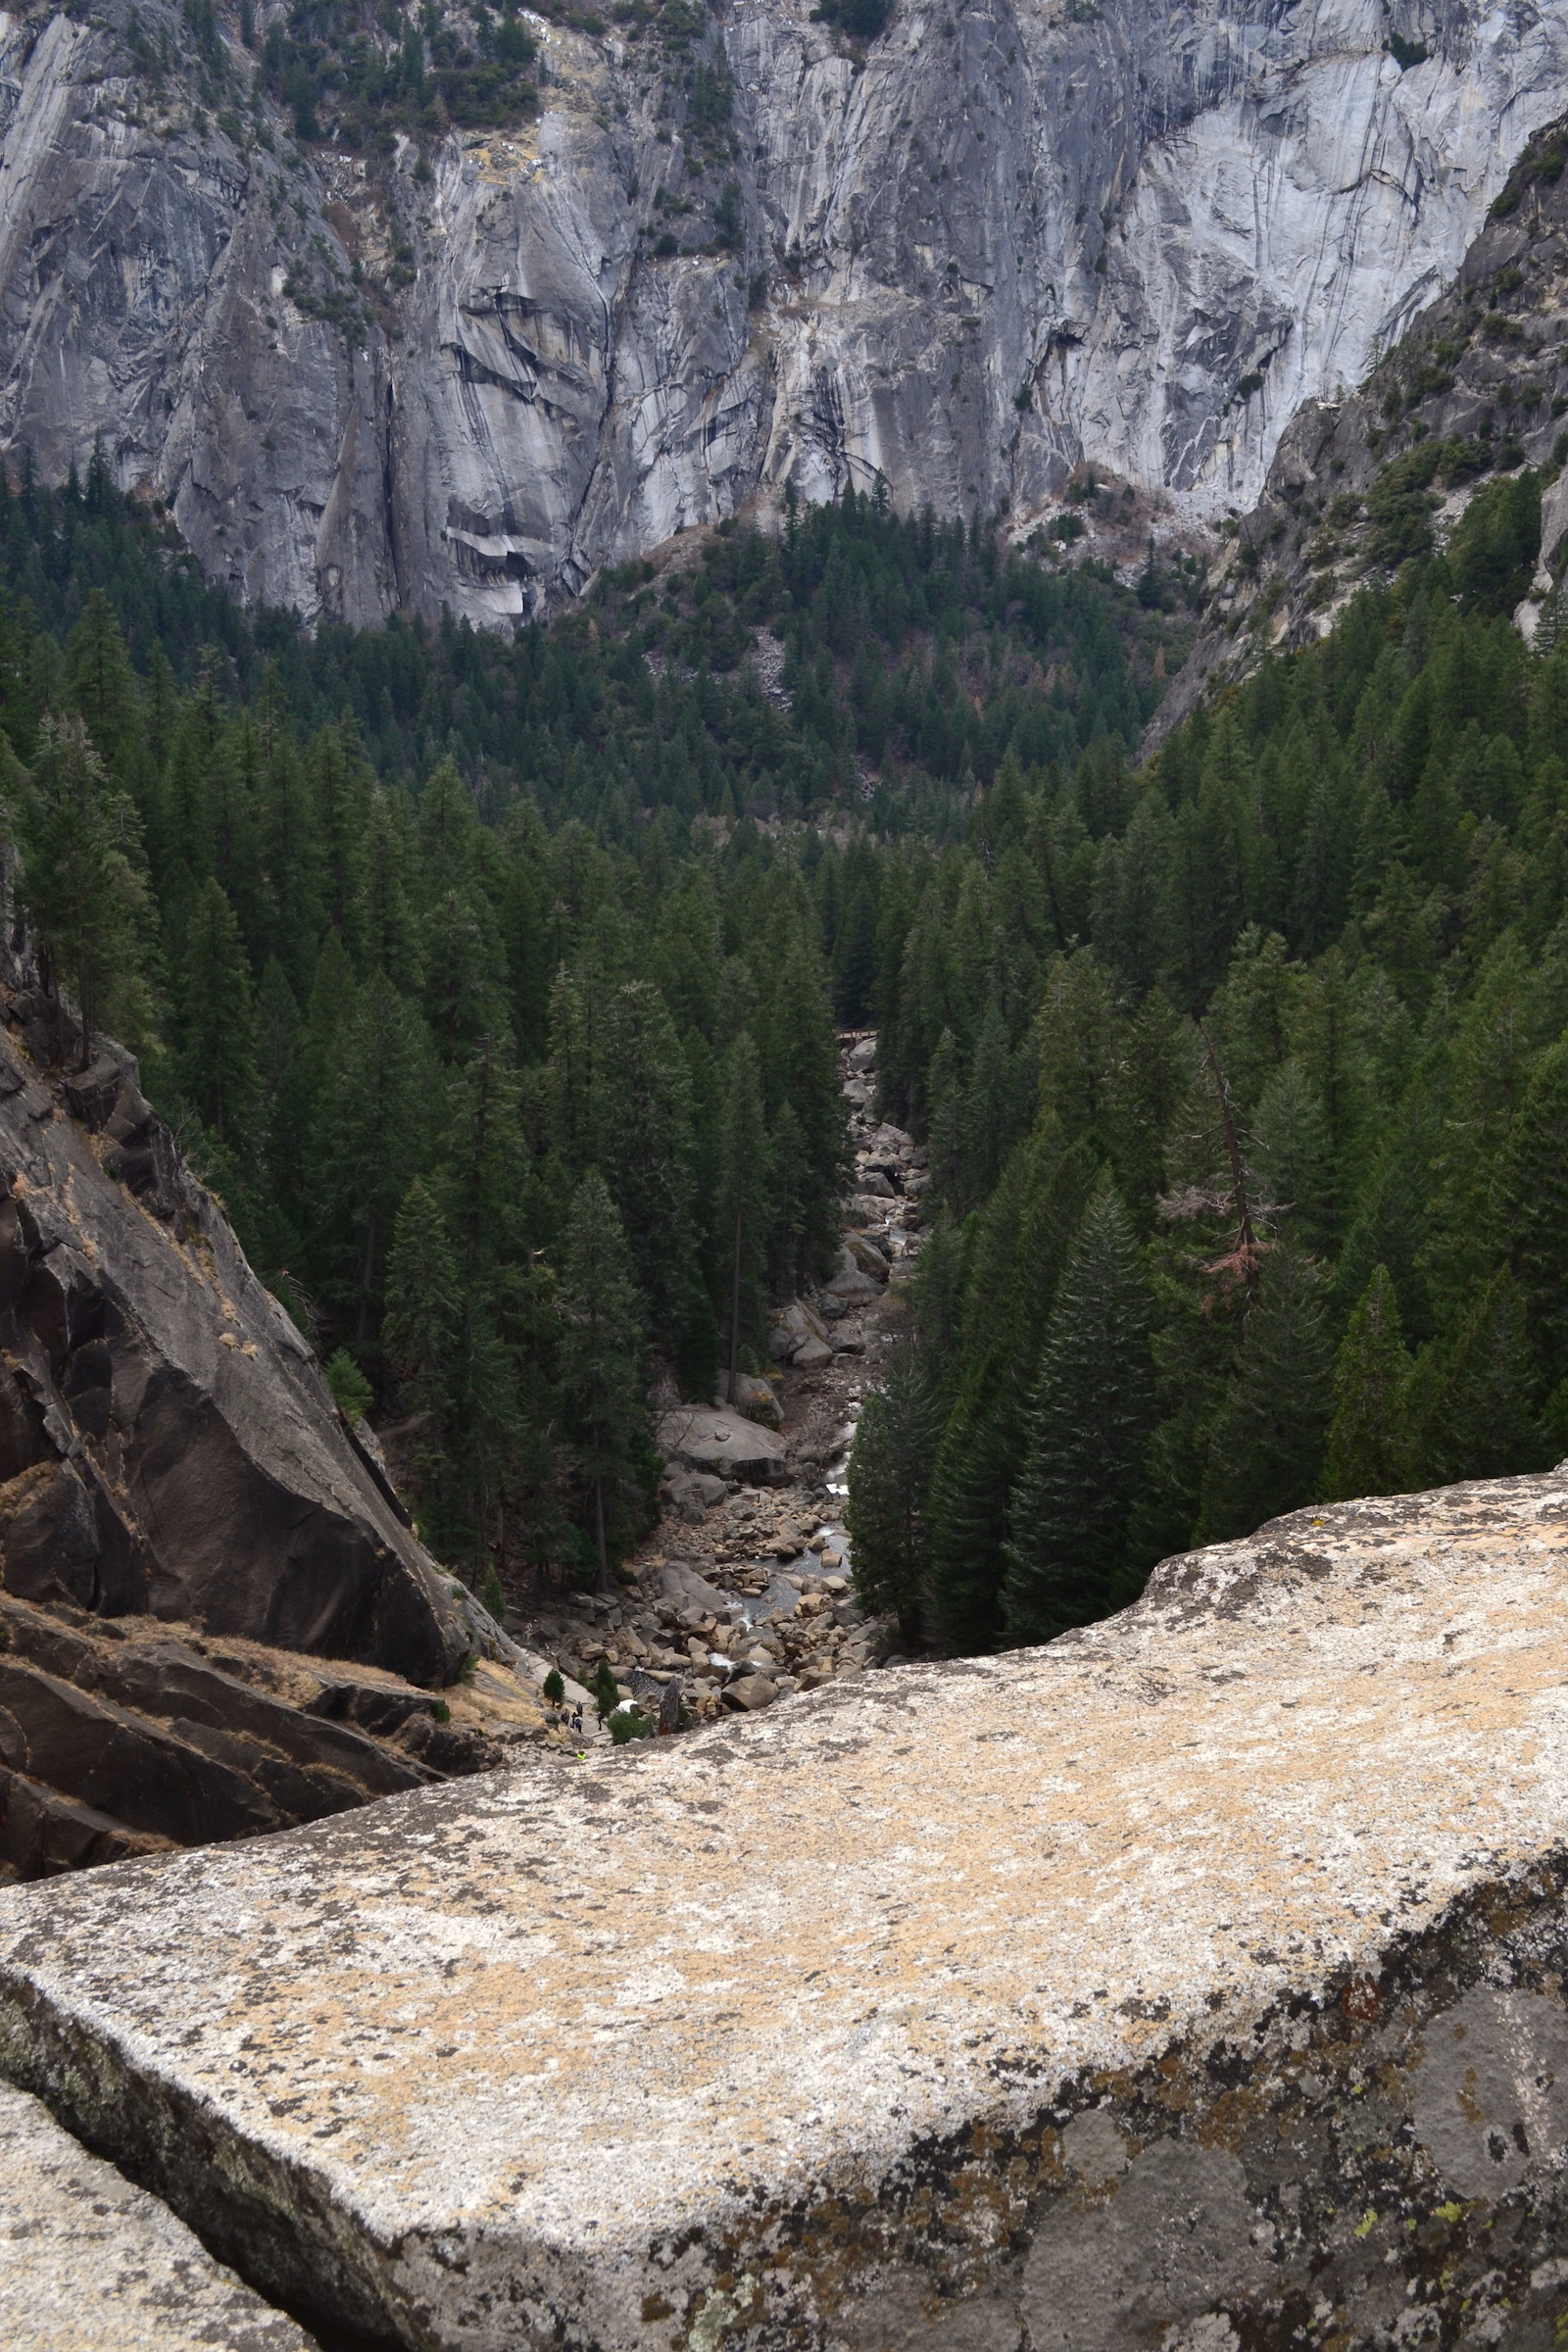 View from the top of the Vernal Falls Trail